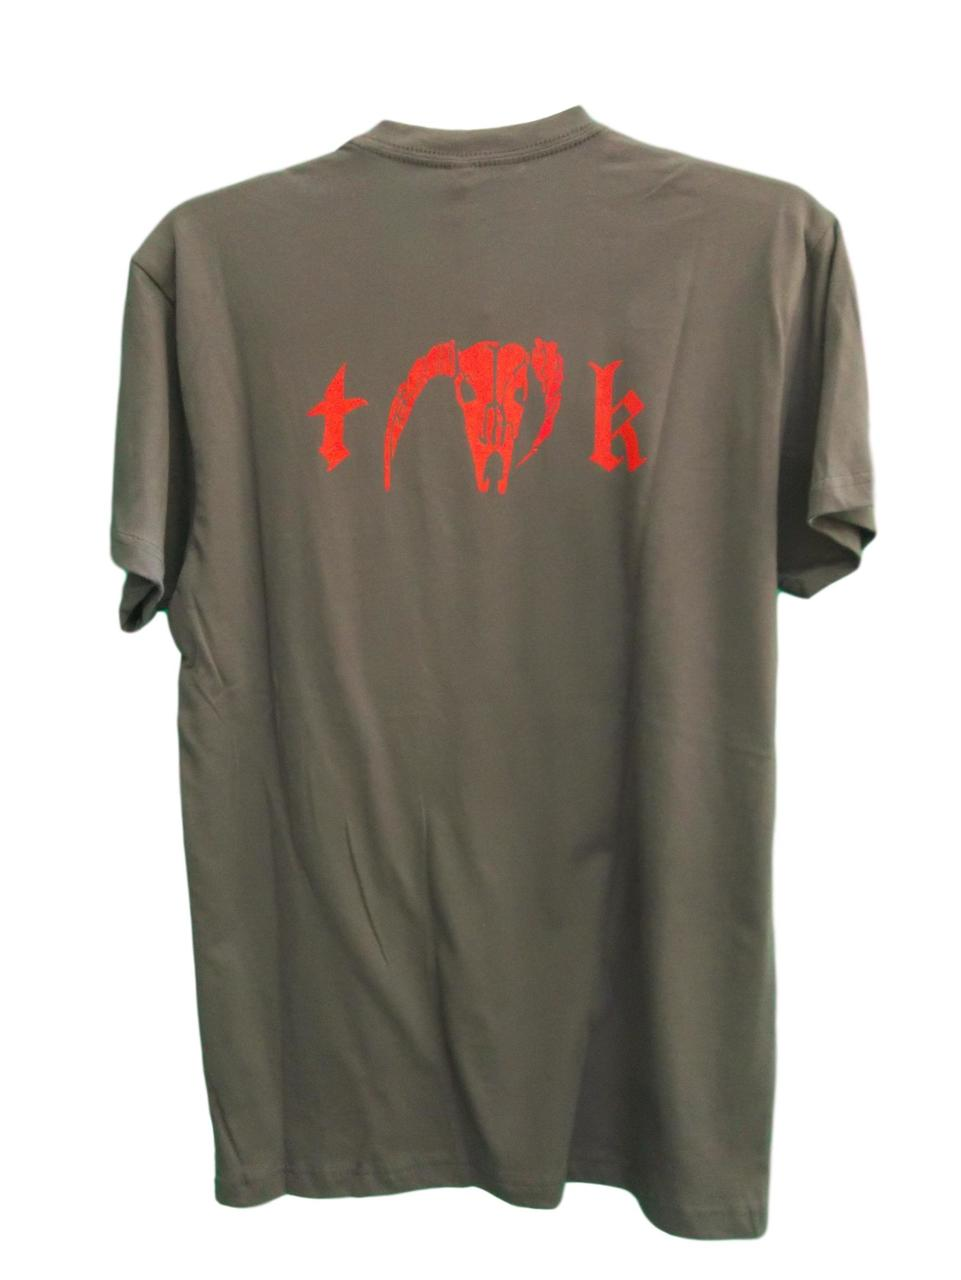 TK Specialties Grey Logo T-shirts